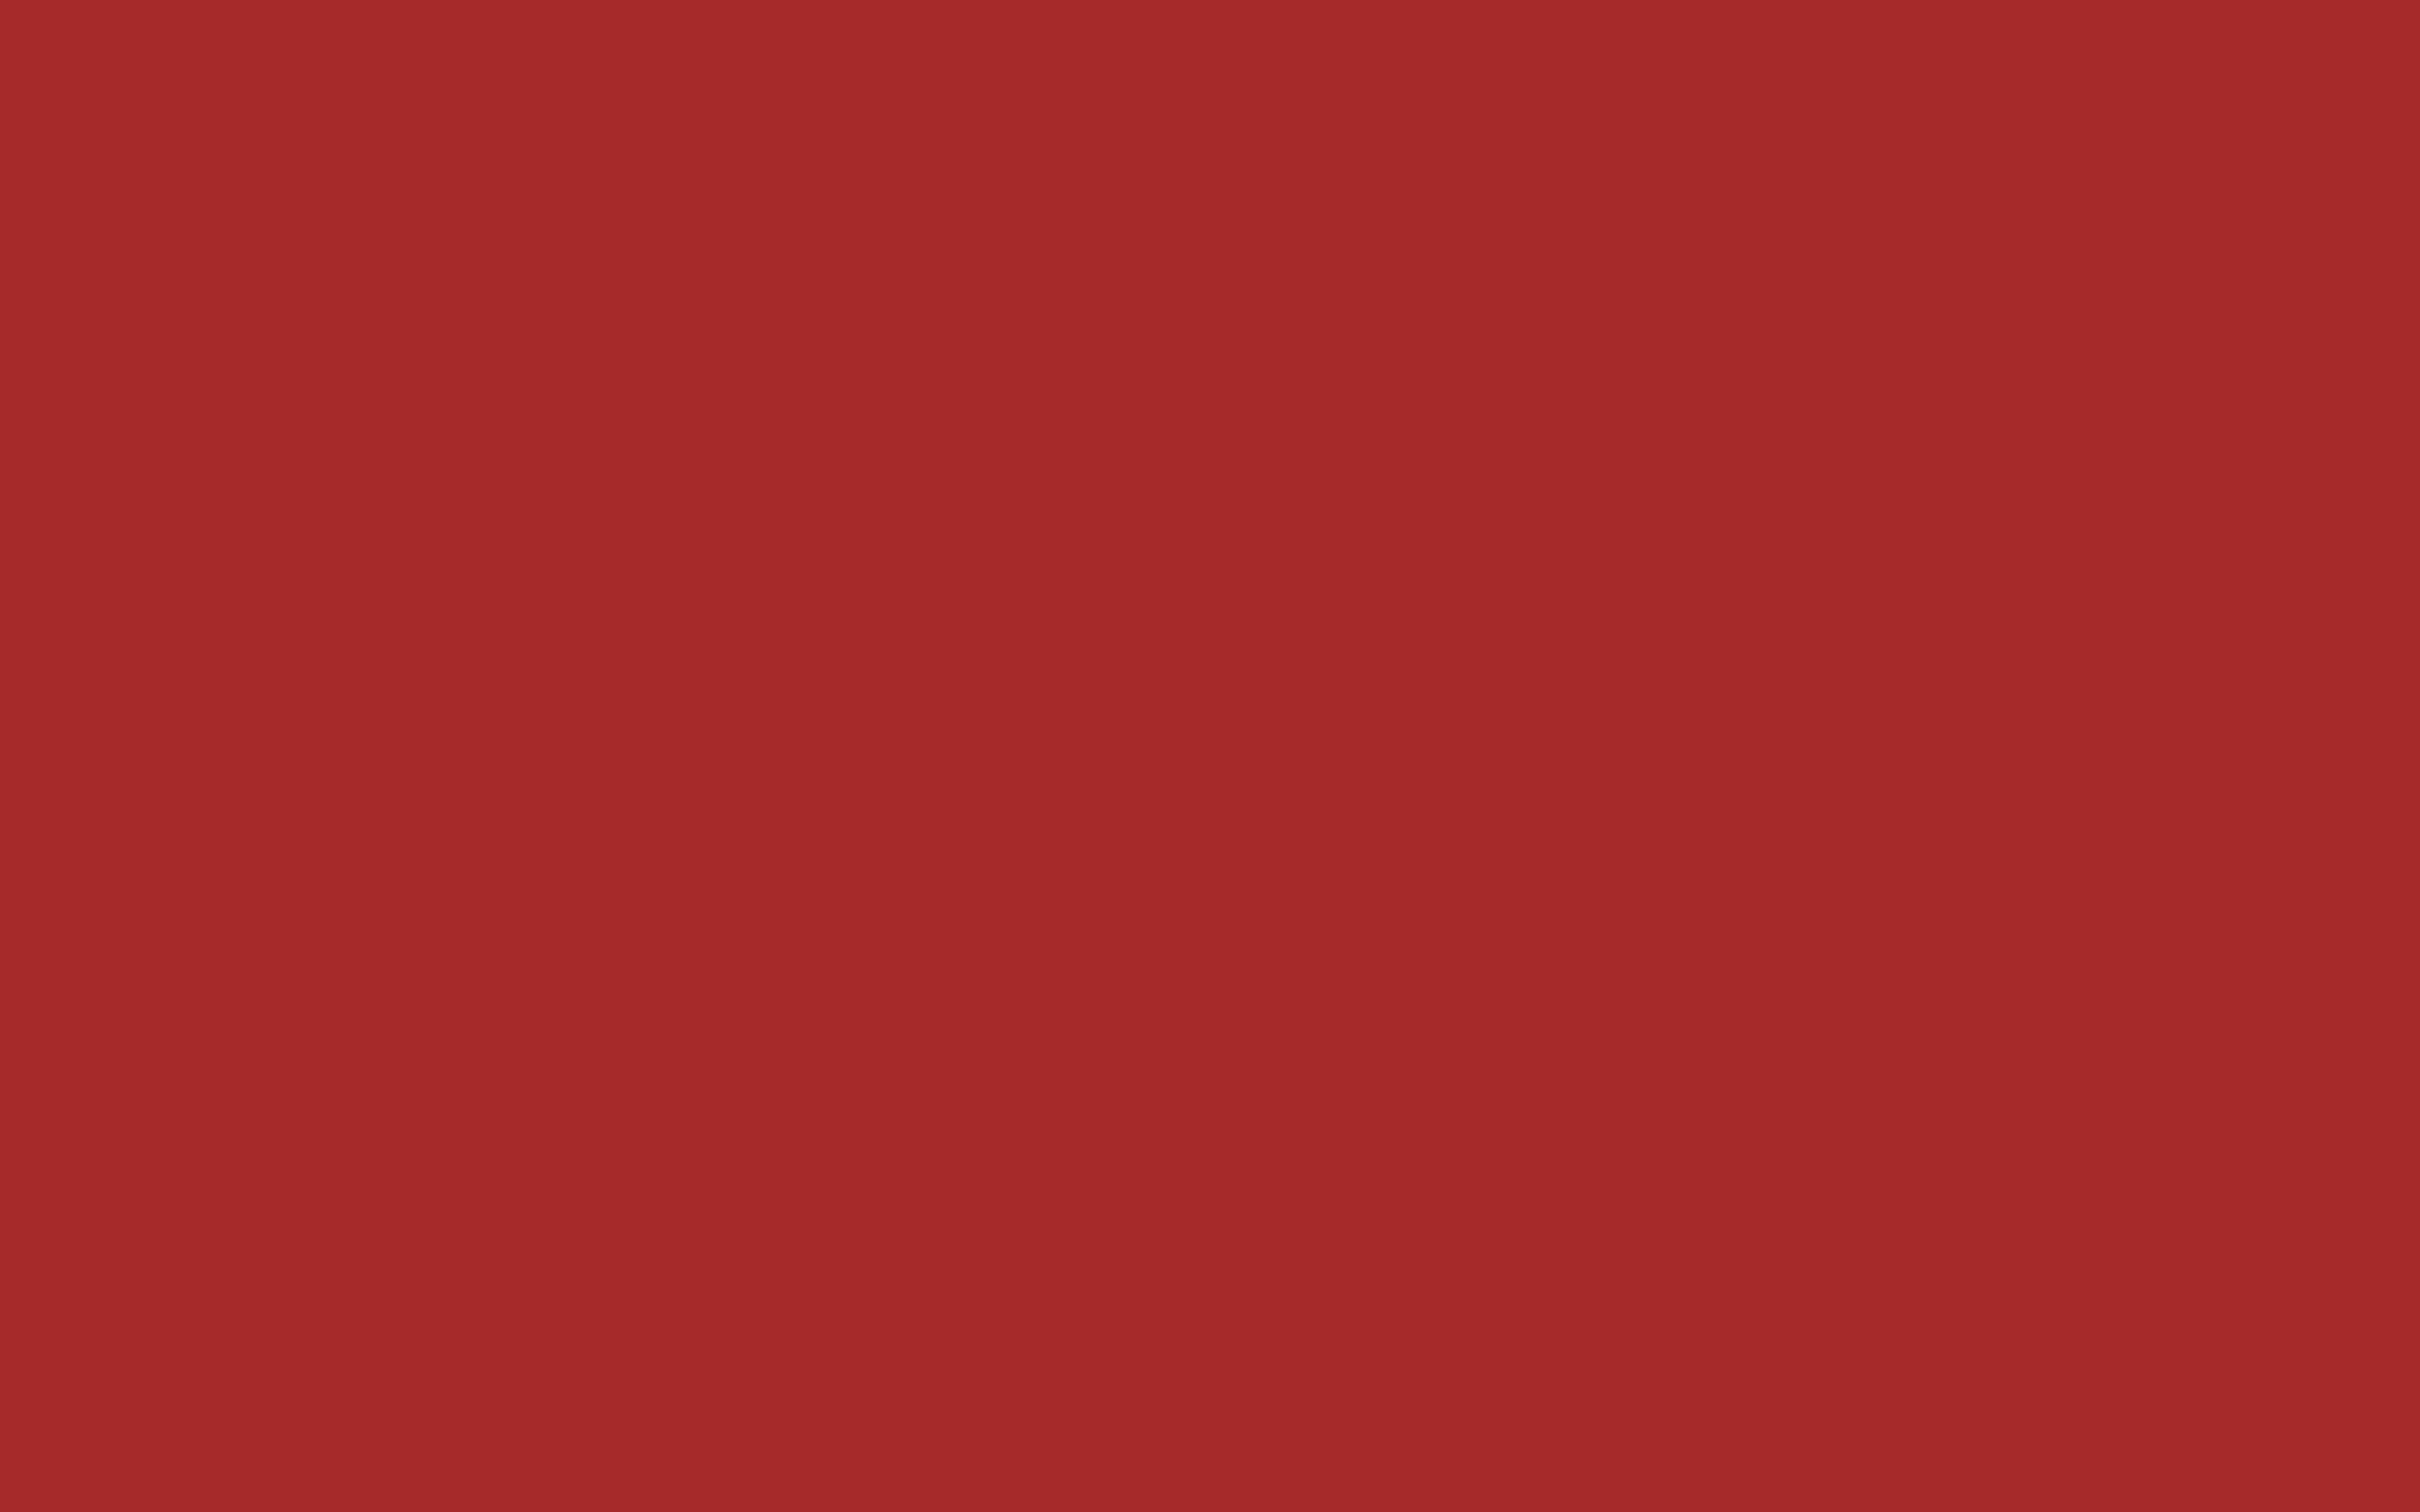 2560x1600 Red-brown Solid Color Background